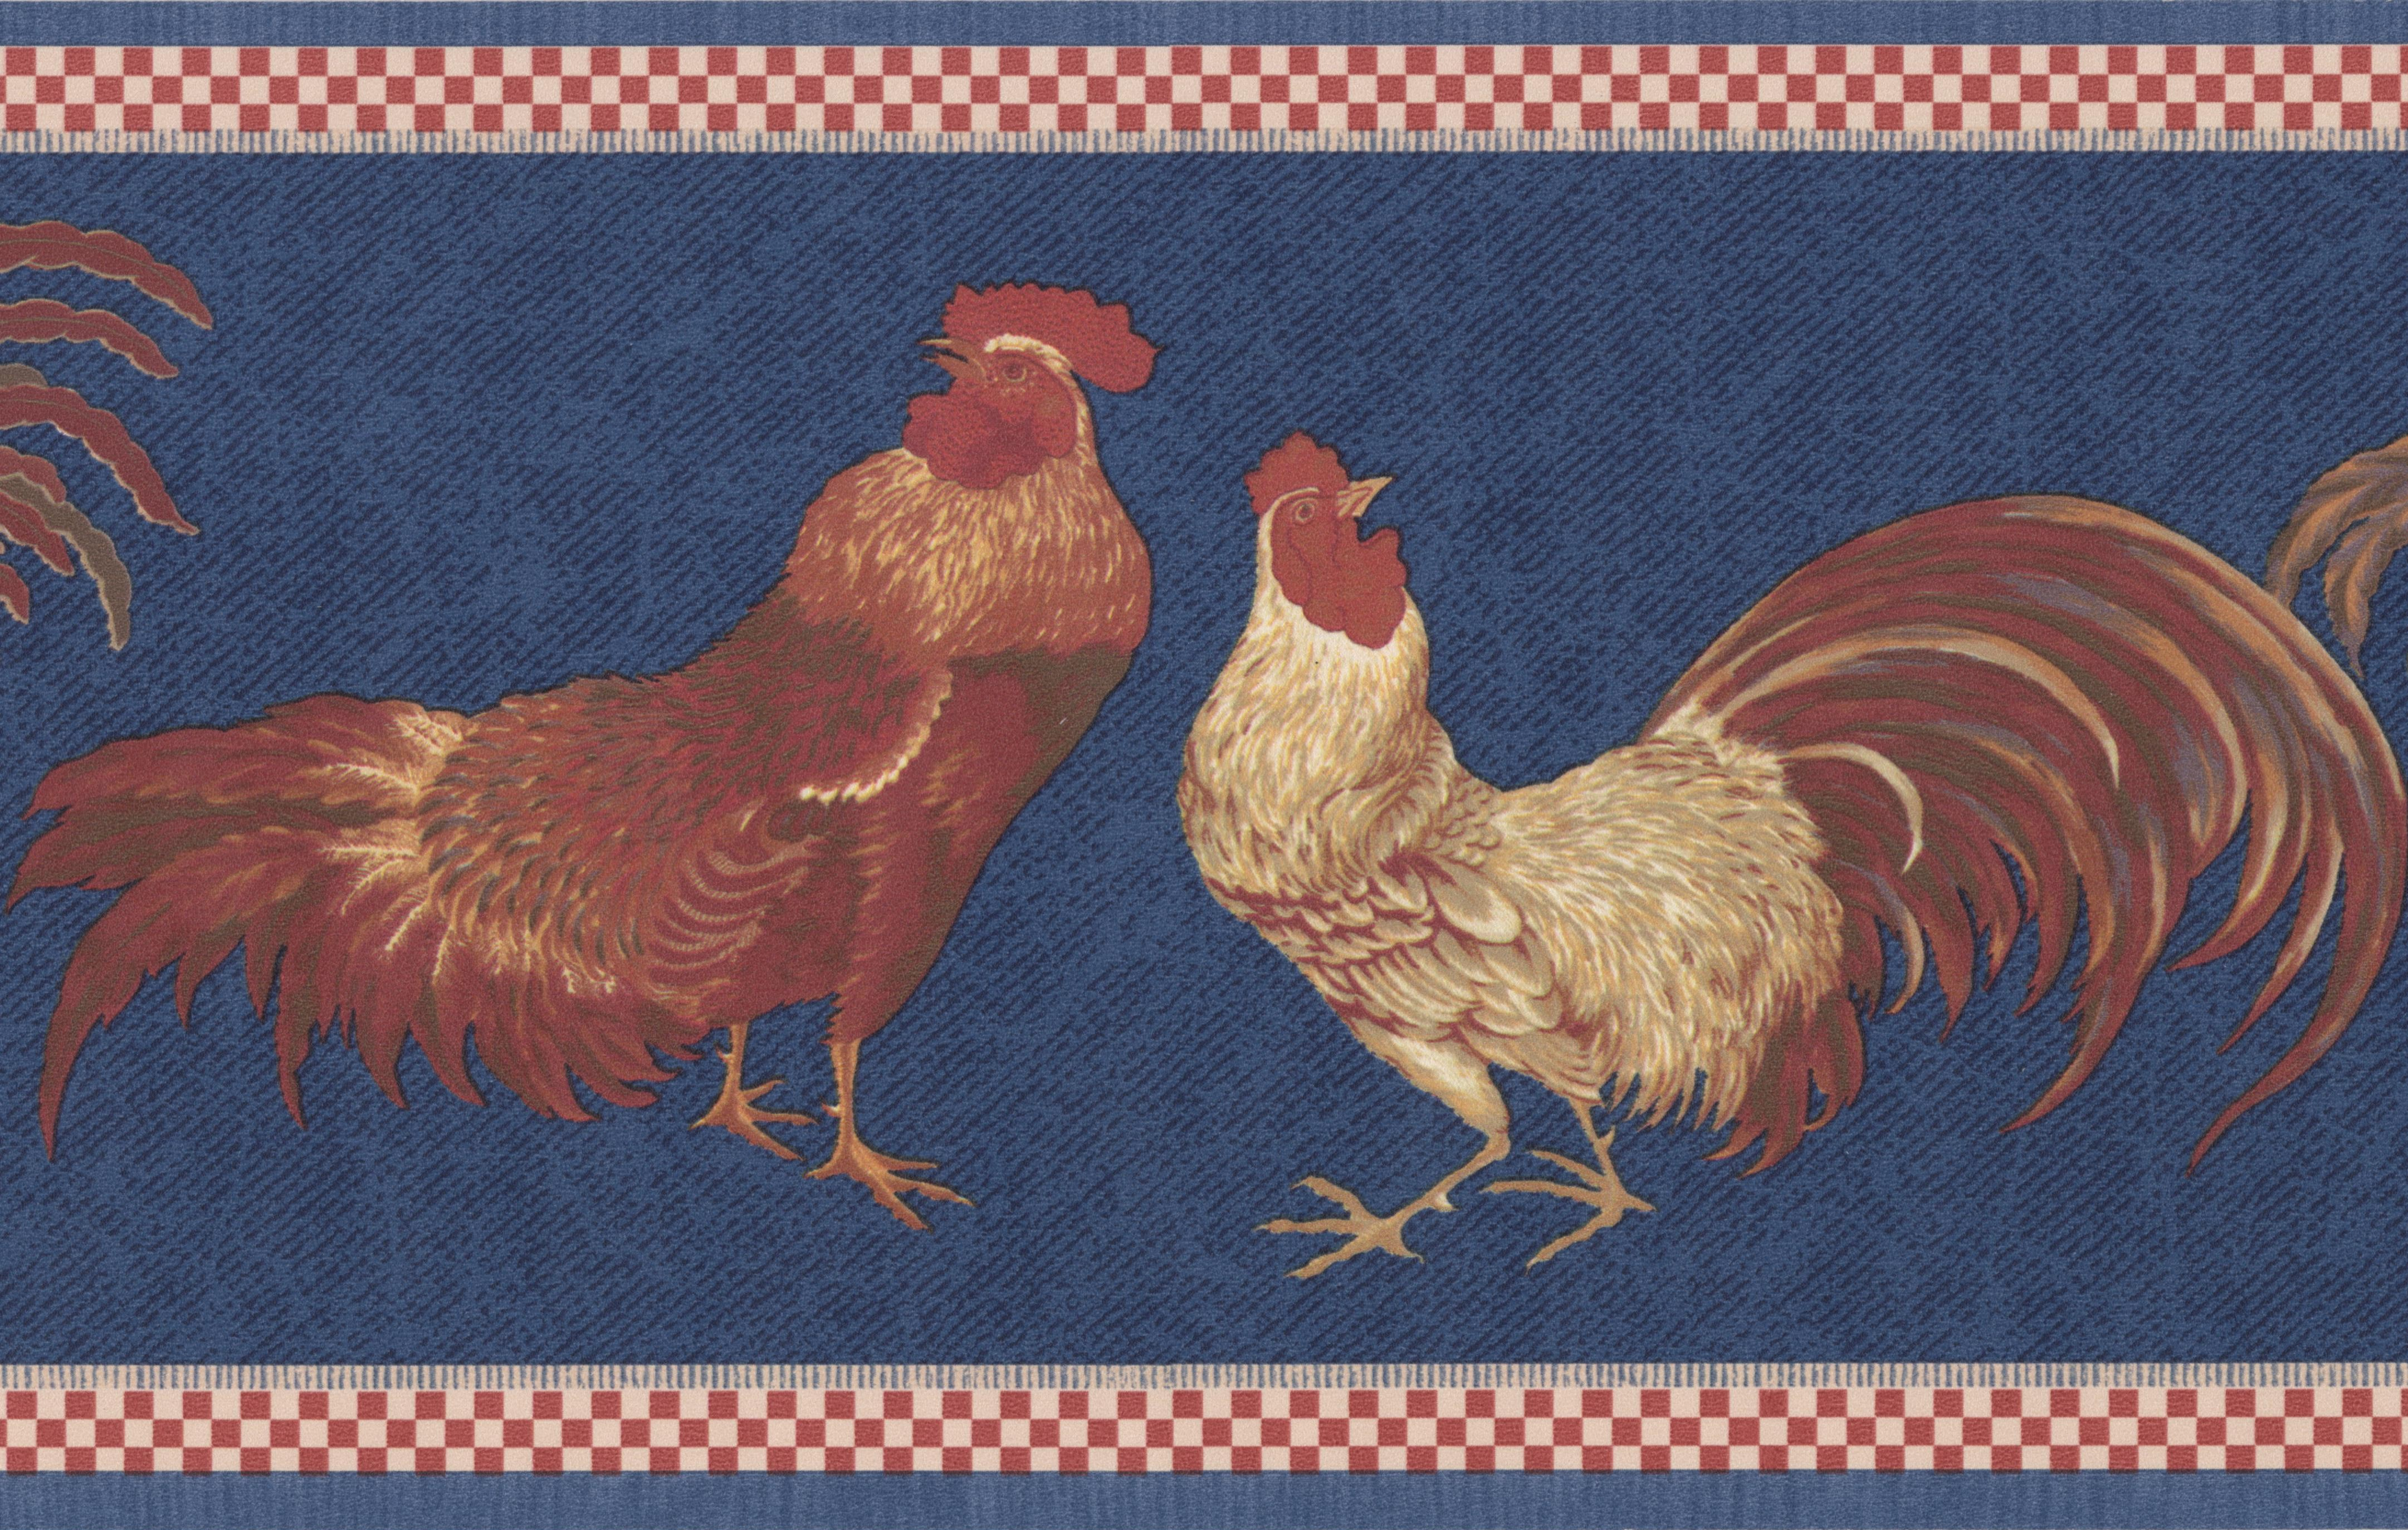 Beige Red Rooster Blue Wallpaper Border Retro Design Roll 15 x 7 4323x2747